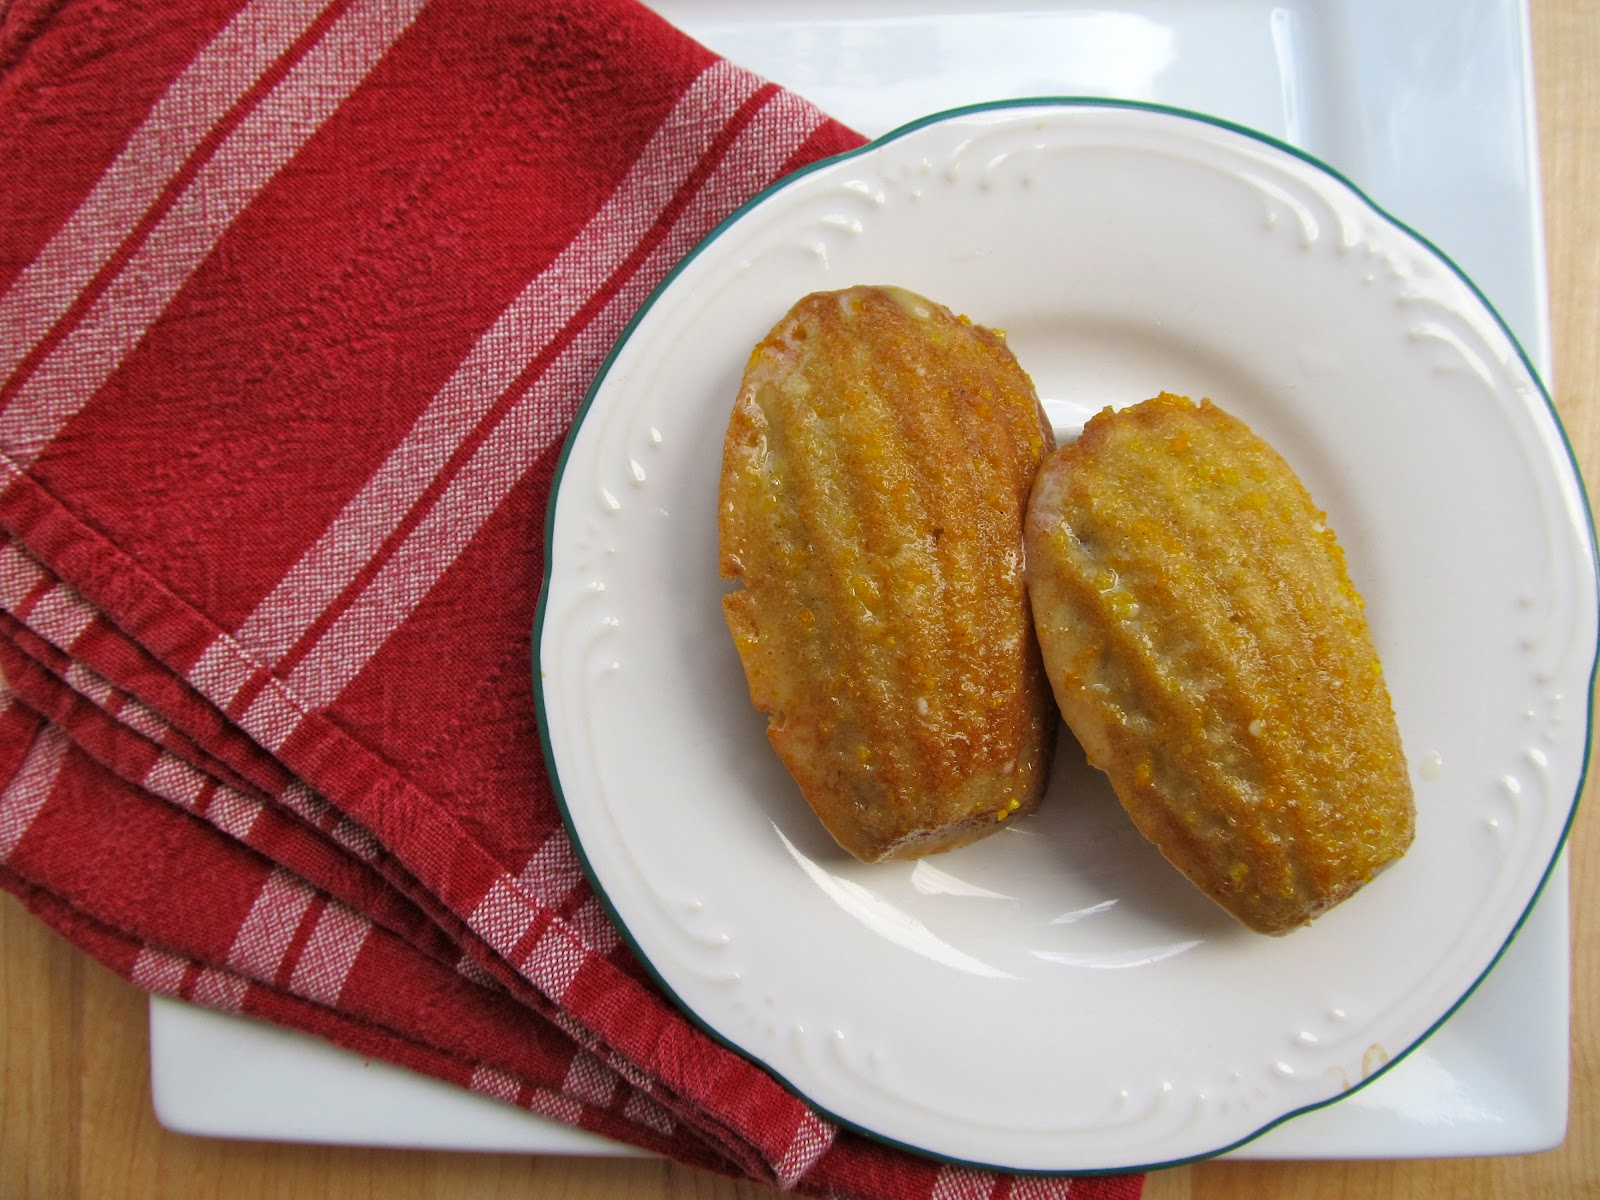 Mary Quite Contrary Bakes: Orange Cardamom Madeleines